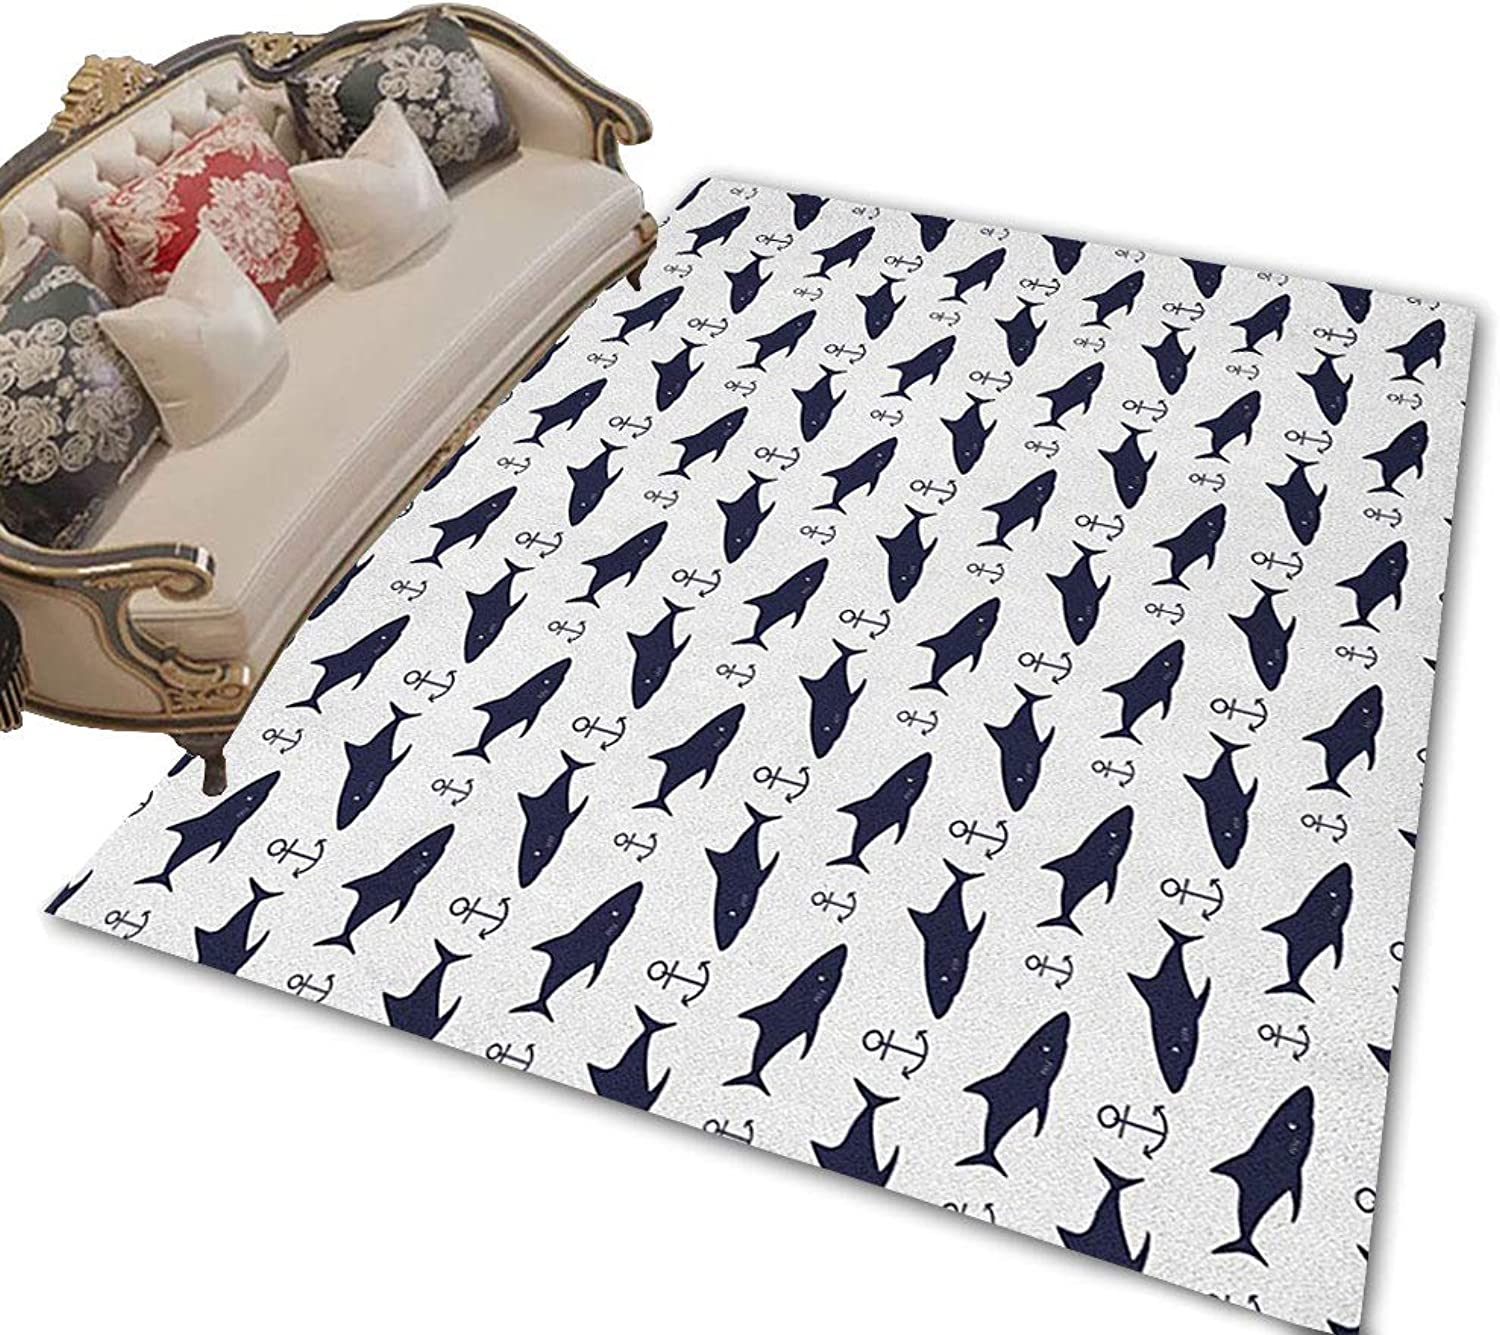 Anchor Floor Mat Indoor Aquatic Pattern with Sharks and Anchors Contemporary Classical Modern Fish Animal Front Door mat Indigo White 47 x71